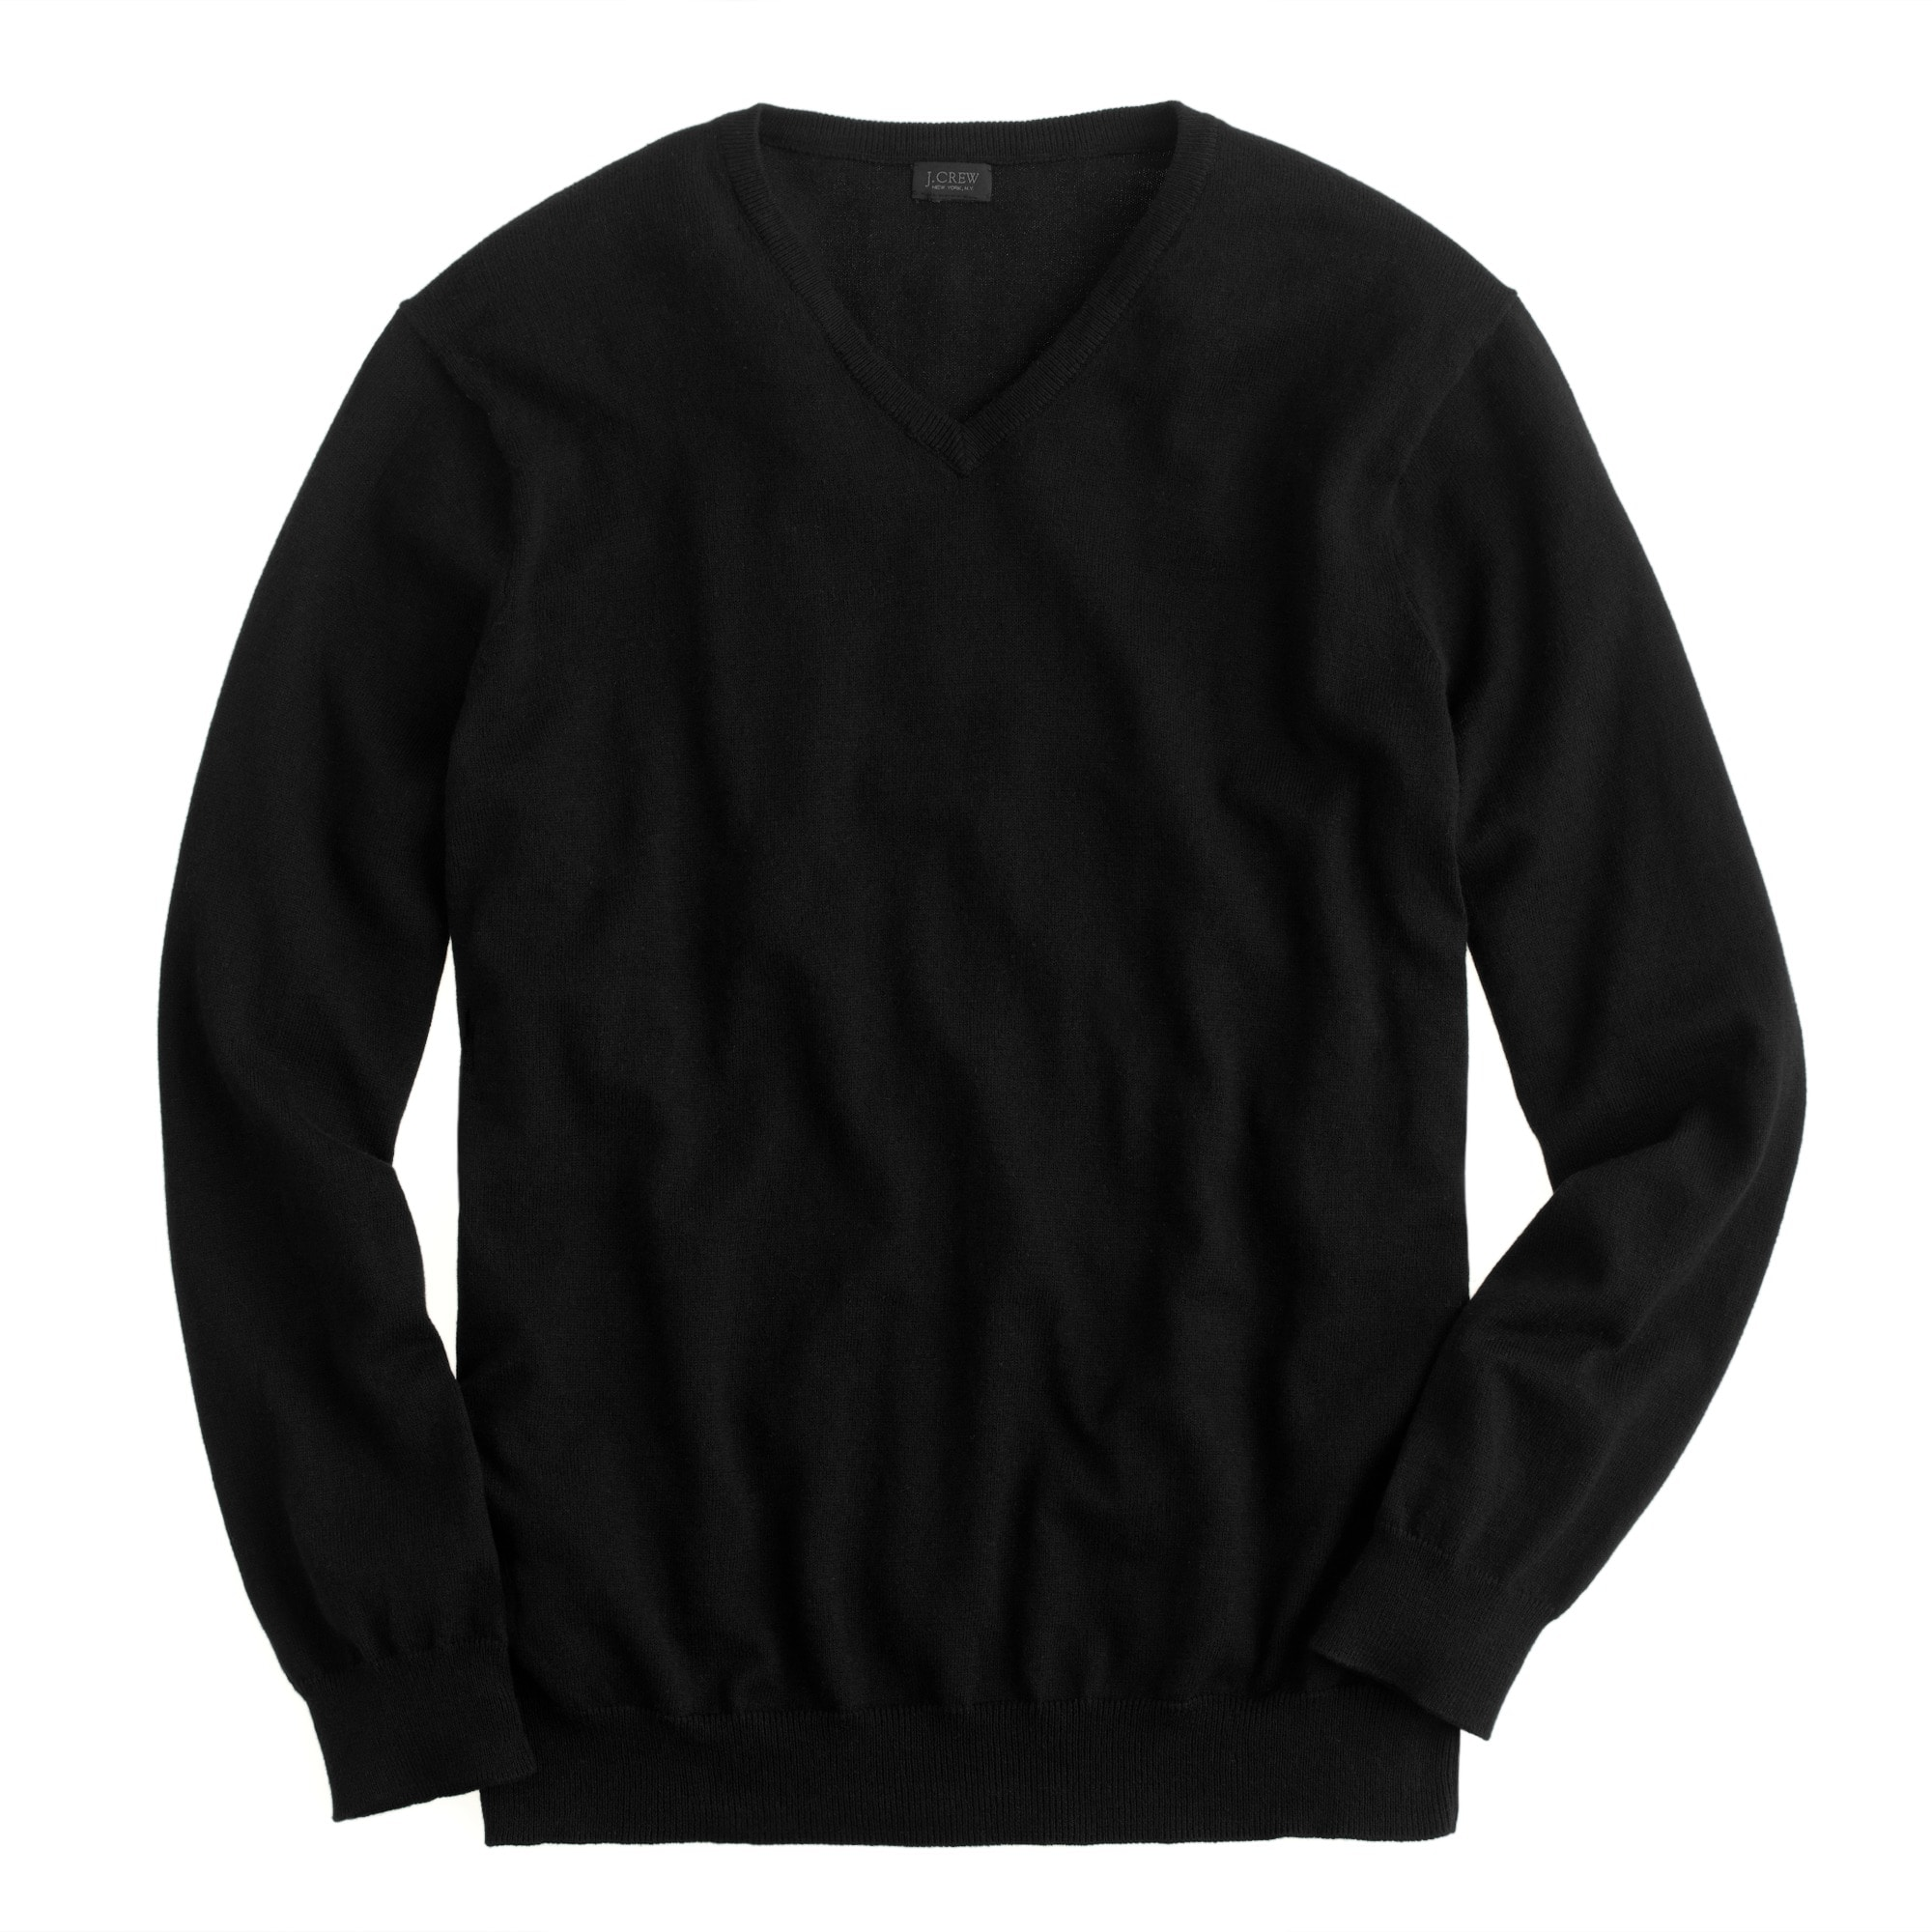 Image 2 for Slim cotton-cashmere V-neck sweater